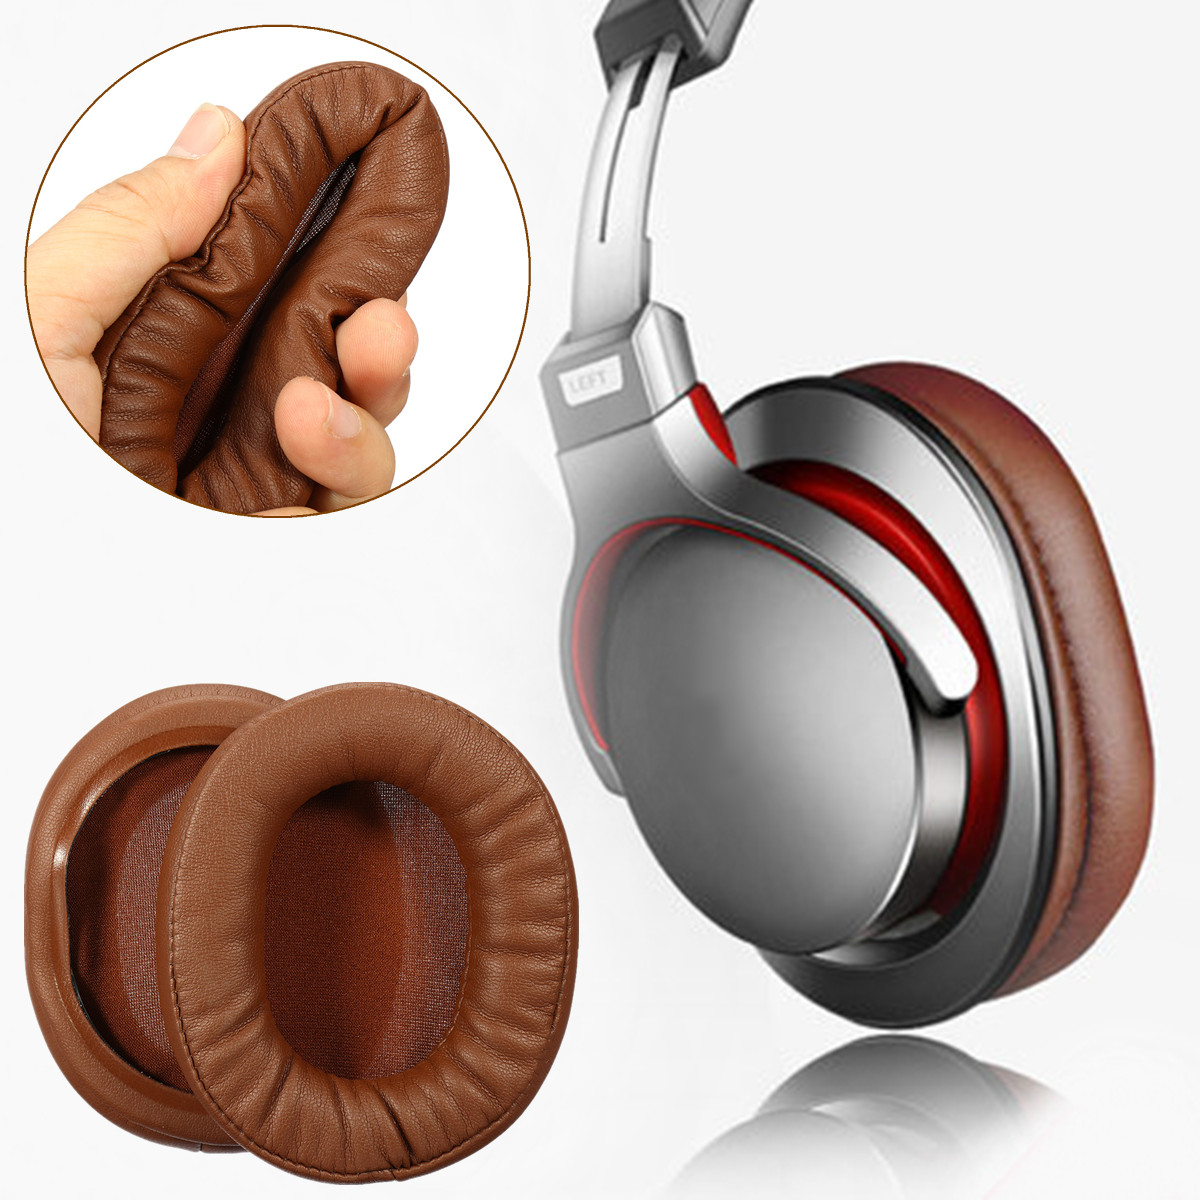 1 Pair Soft Earpads Cushion Replacement for Sony MDR-1A ATH-MSR7 M50X M20 M40 M40X SX1 Headphone